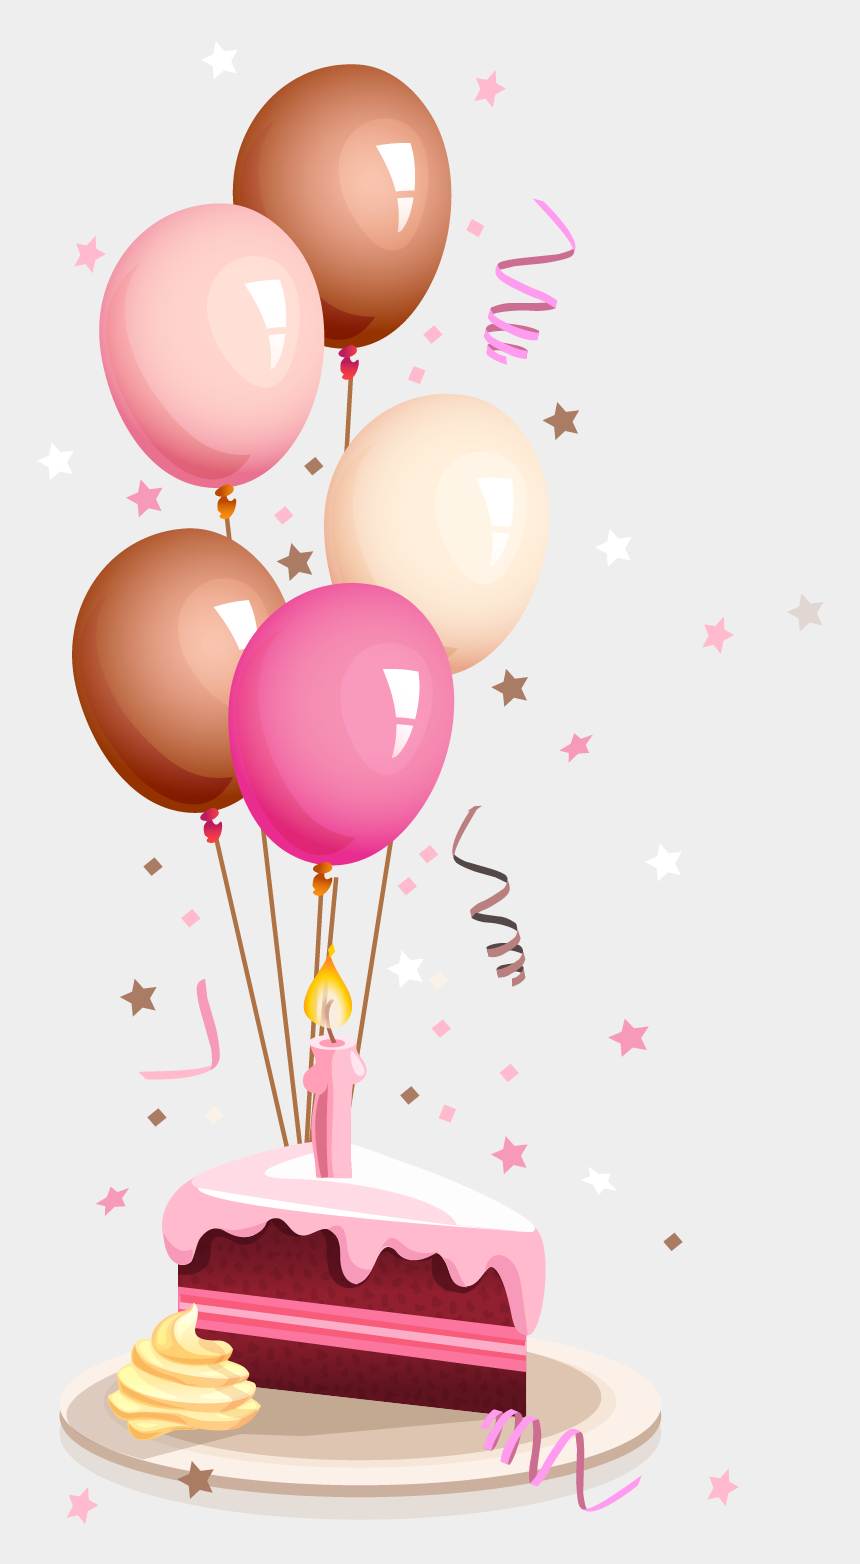 august birthday cake clipart, Cartoons - Balloons And Cake Png